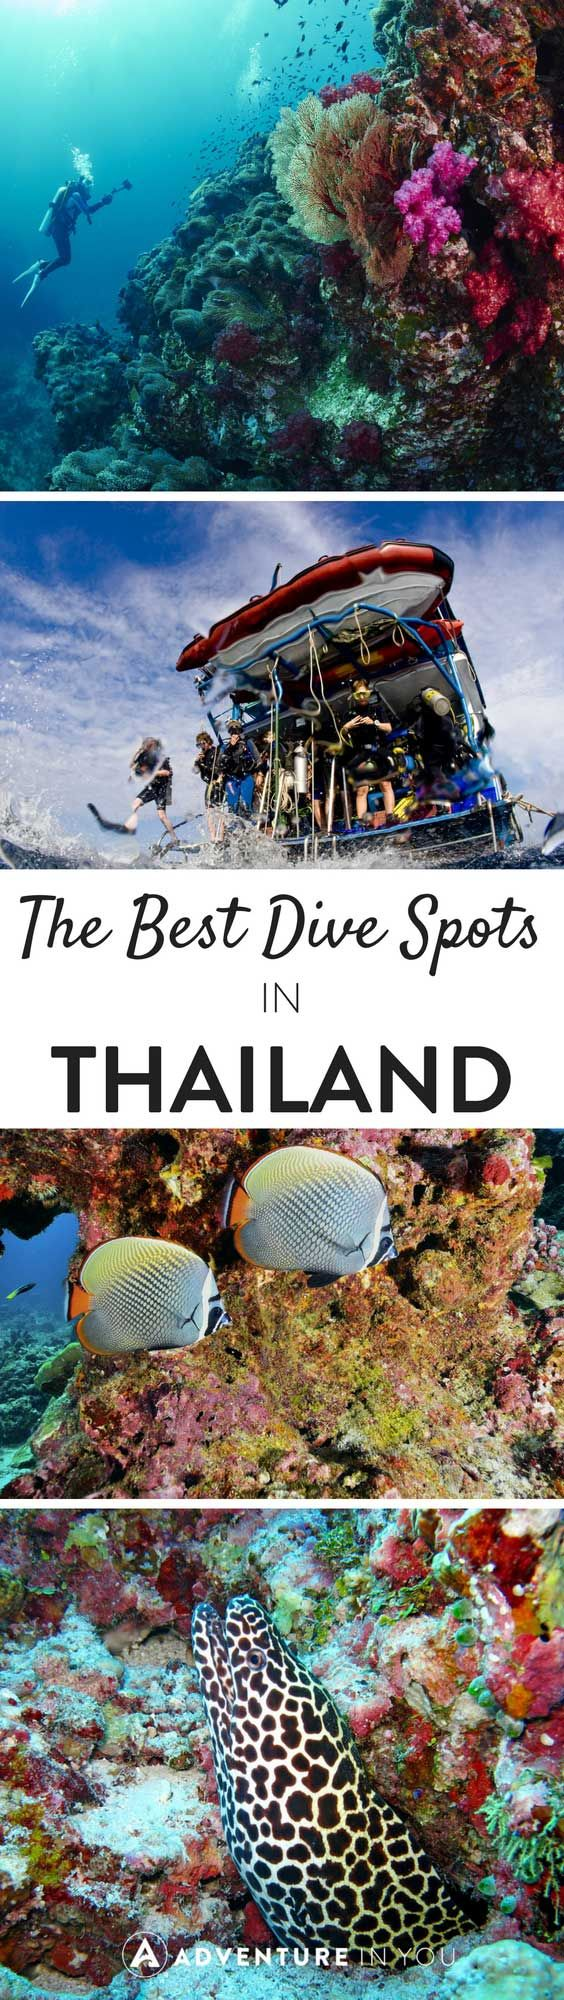 Explore the amazing ocean while diving in Thailand! Find the best spots for your adventure right here!